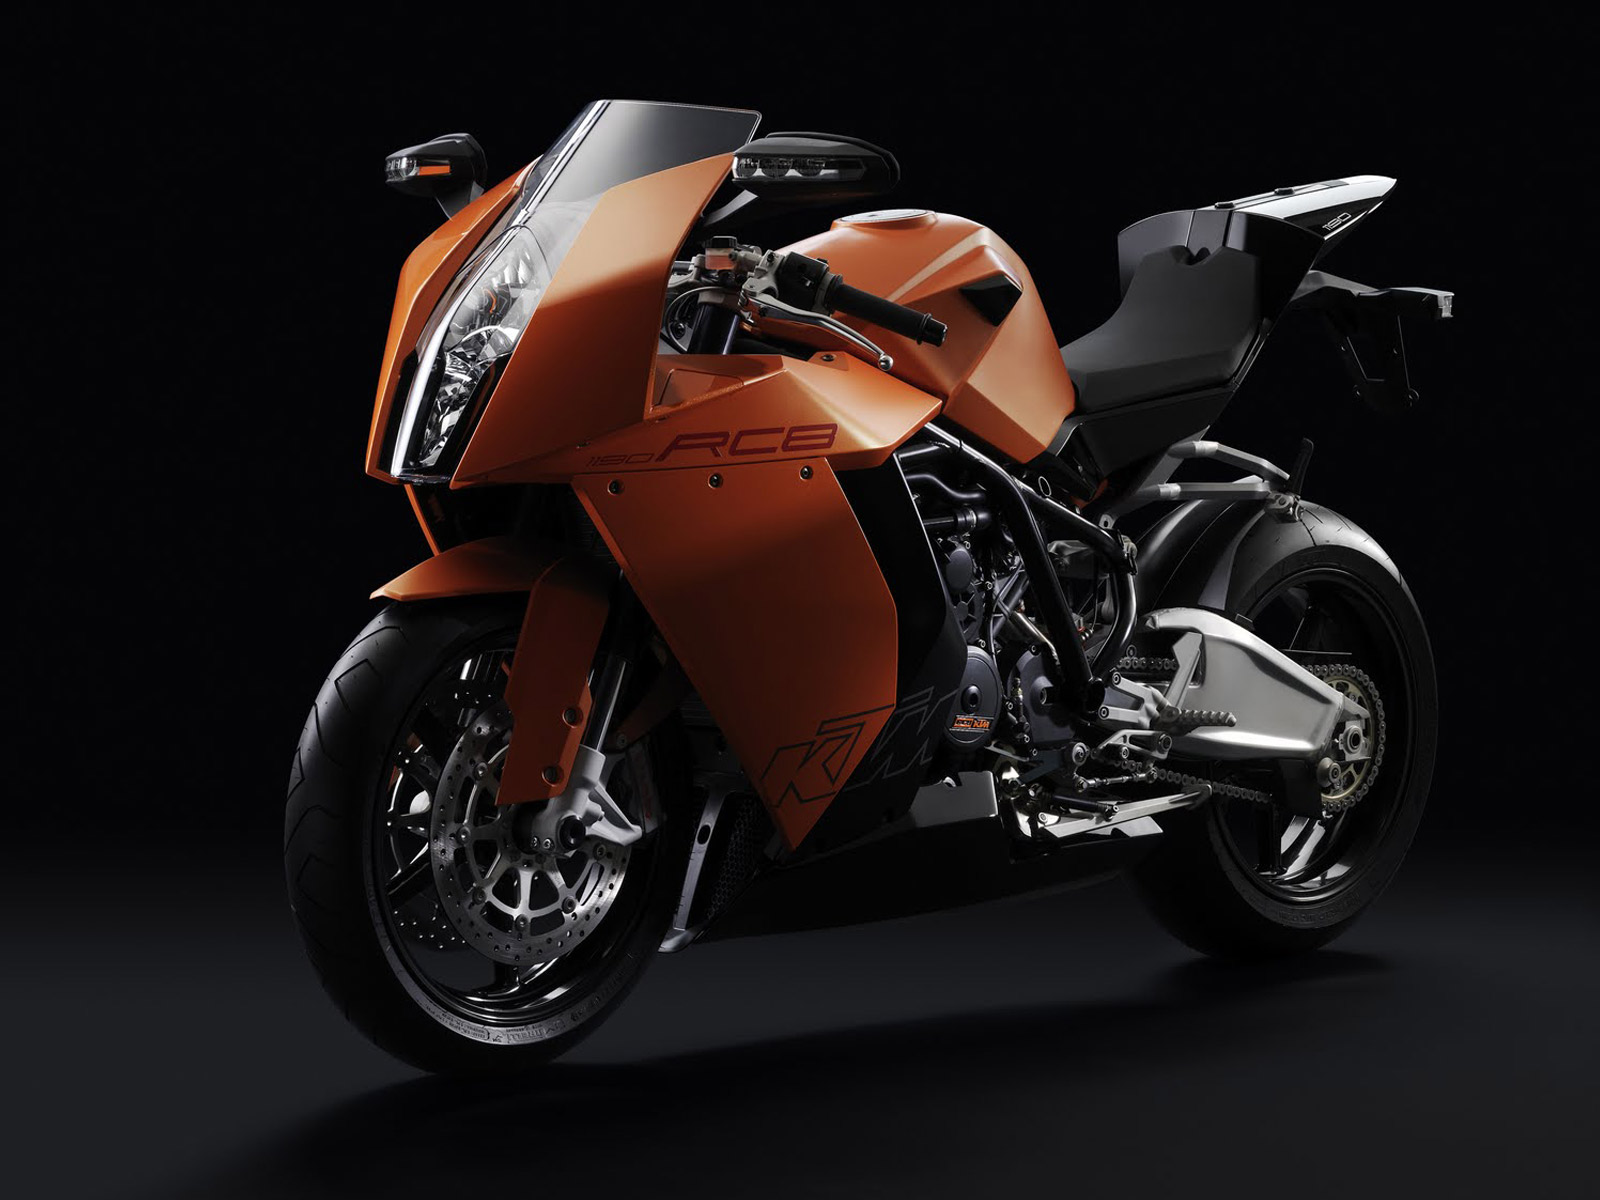 KTM 1190 RC8 Wallpapers HD Wallpapers 1600x1200